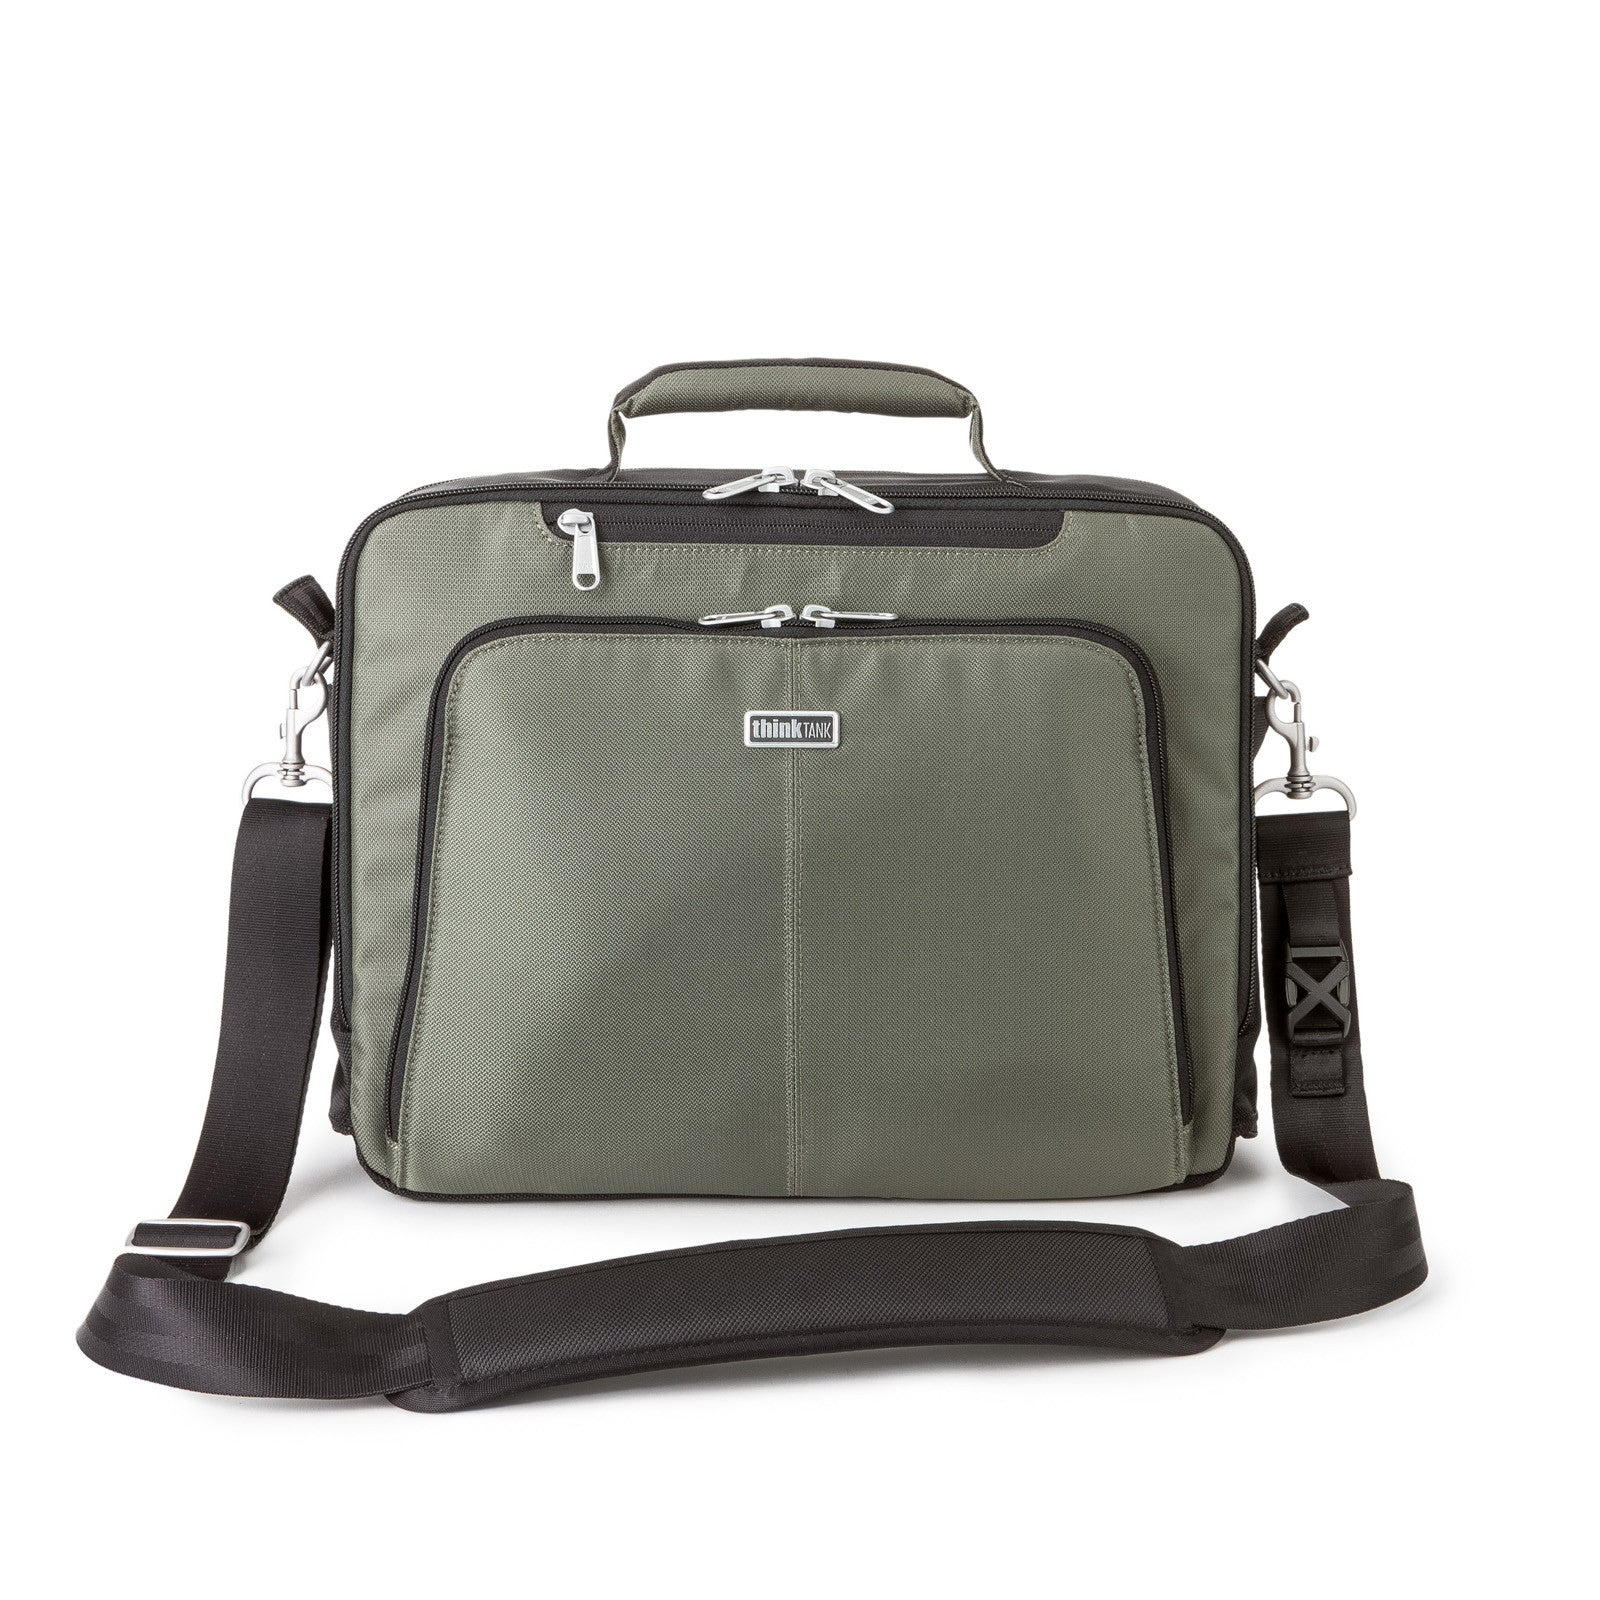 My 2nd Brain Briefcase 13 (Mist Green)